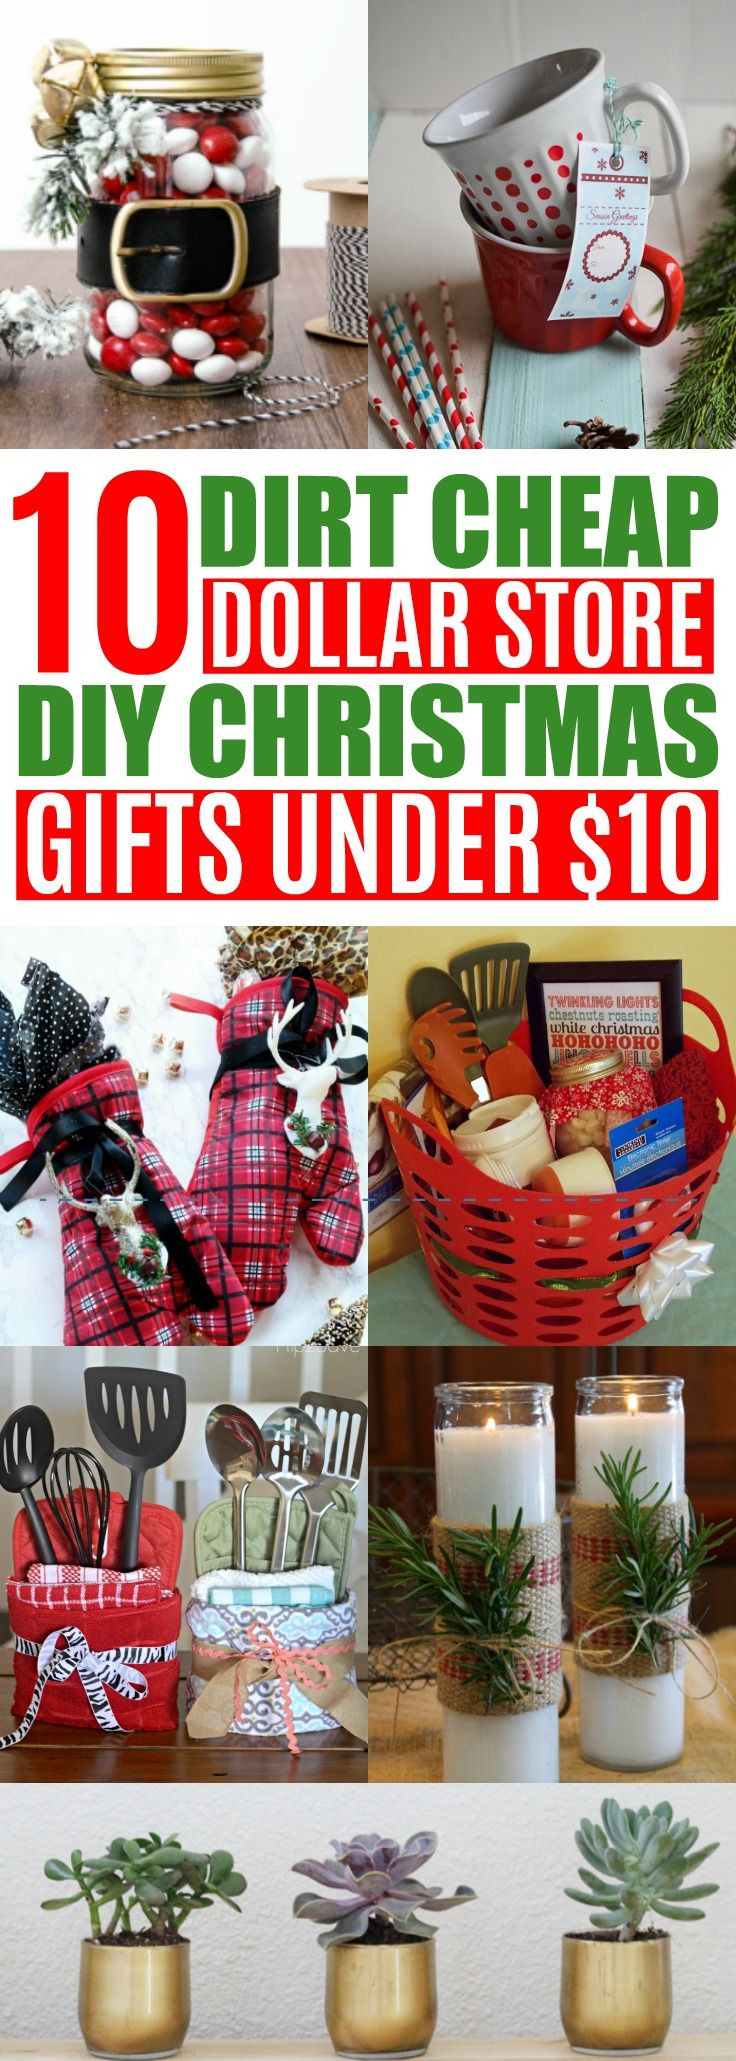 Best ideas about Cheap Holiday Gift Ideas . Save or Pin 10 DIY Cheap Christmas Gift Ideas From the Dollar Store Now.